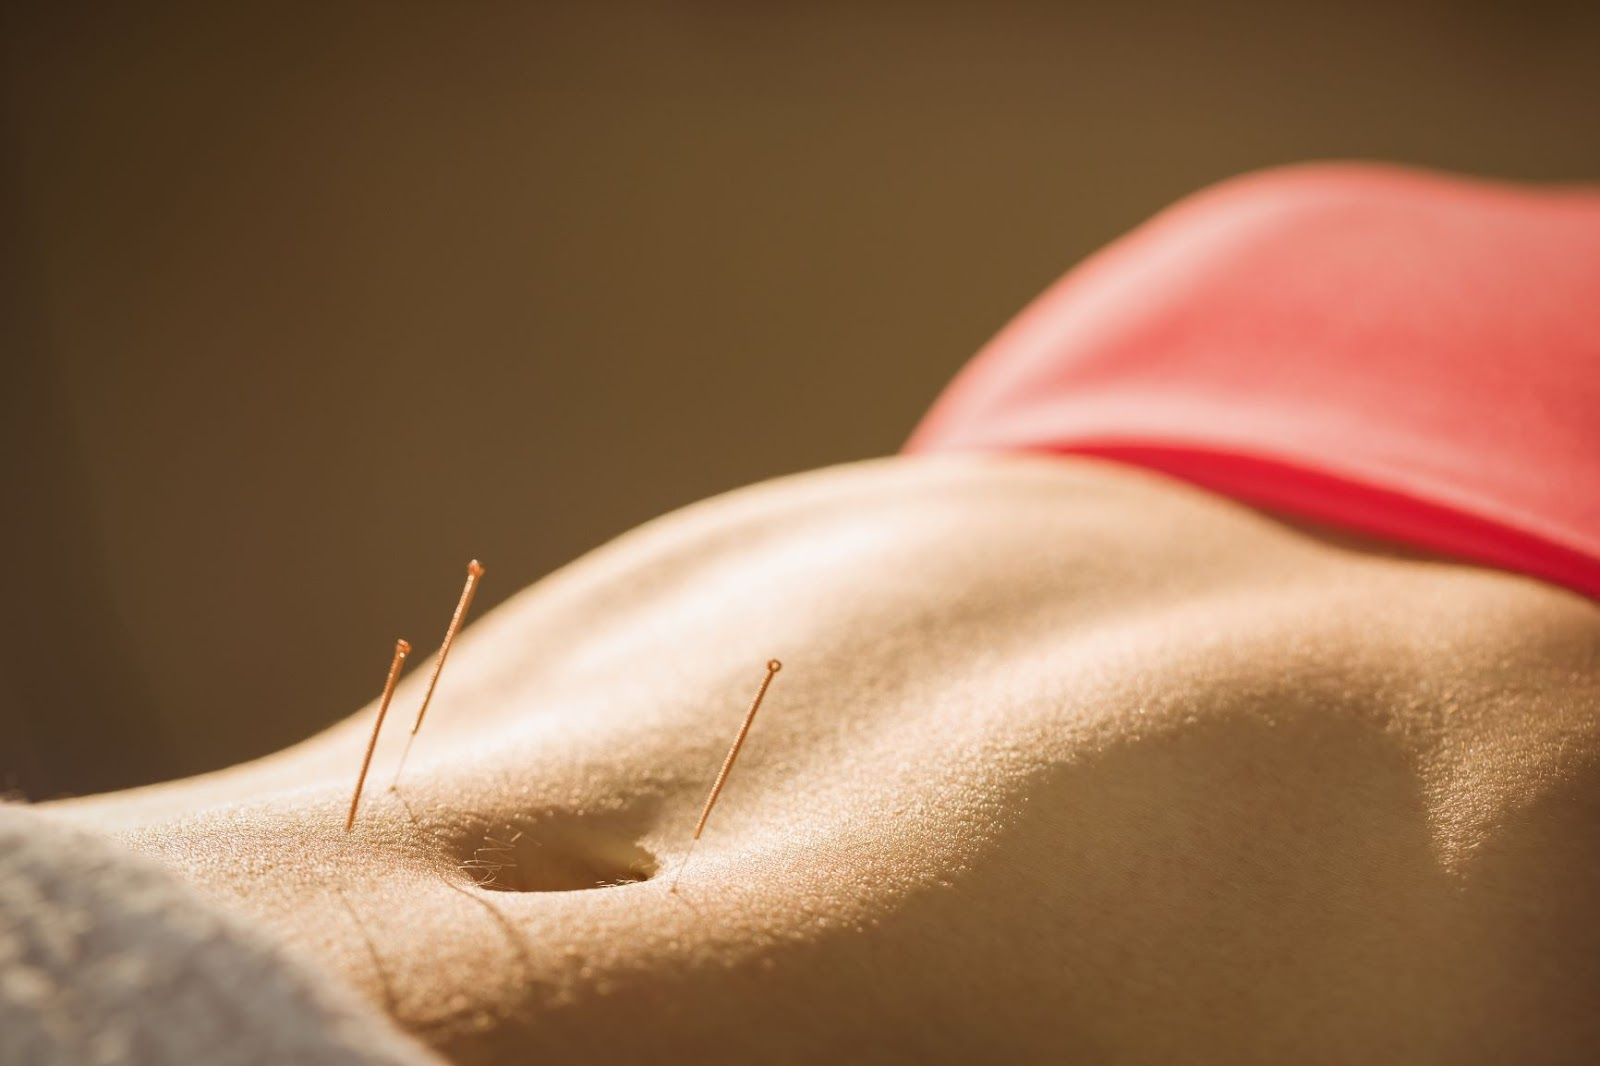 Acupuncture addresses blockages that may be contributing to nutritional deficiencies and chronic health issues.